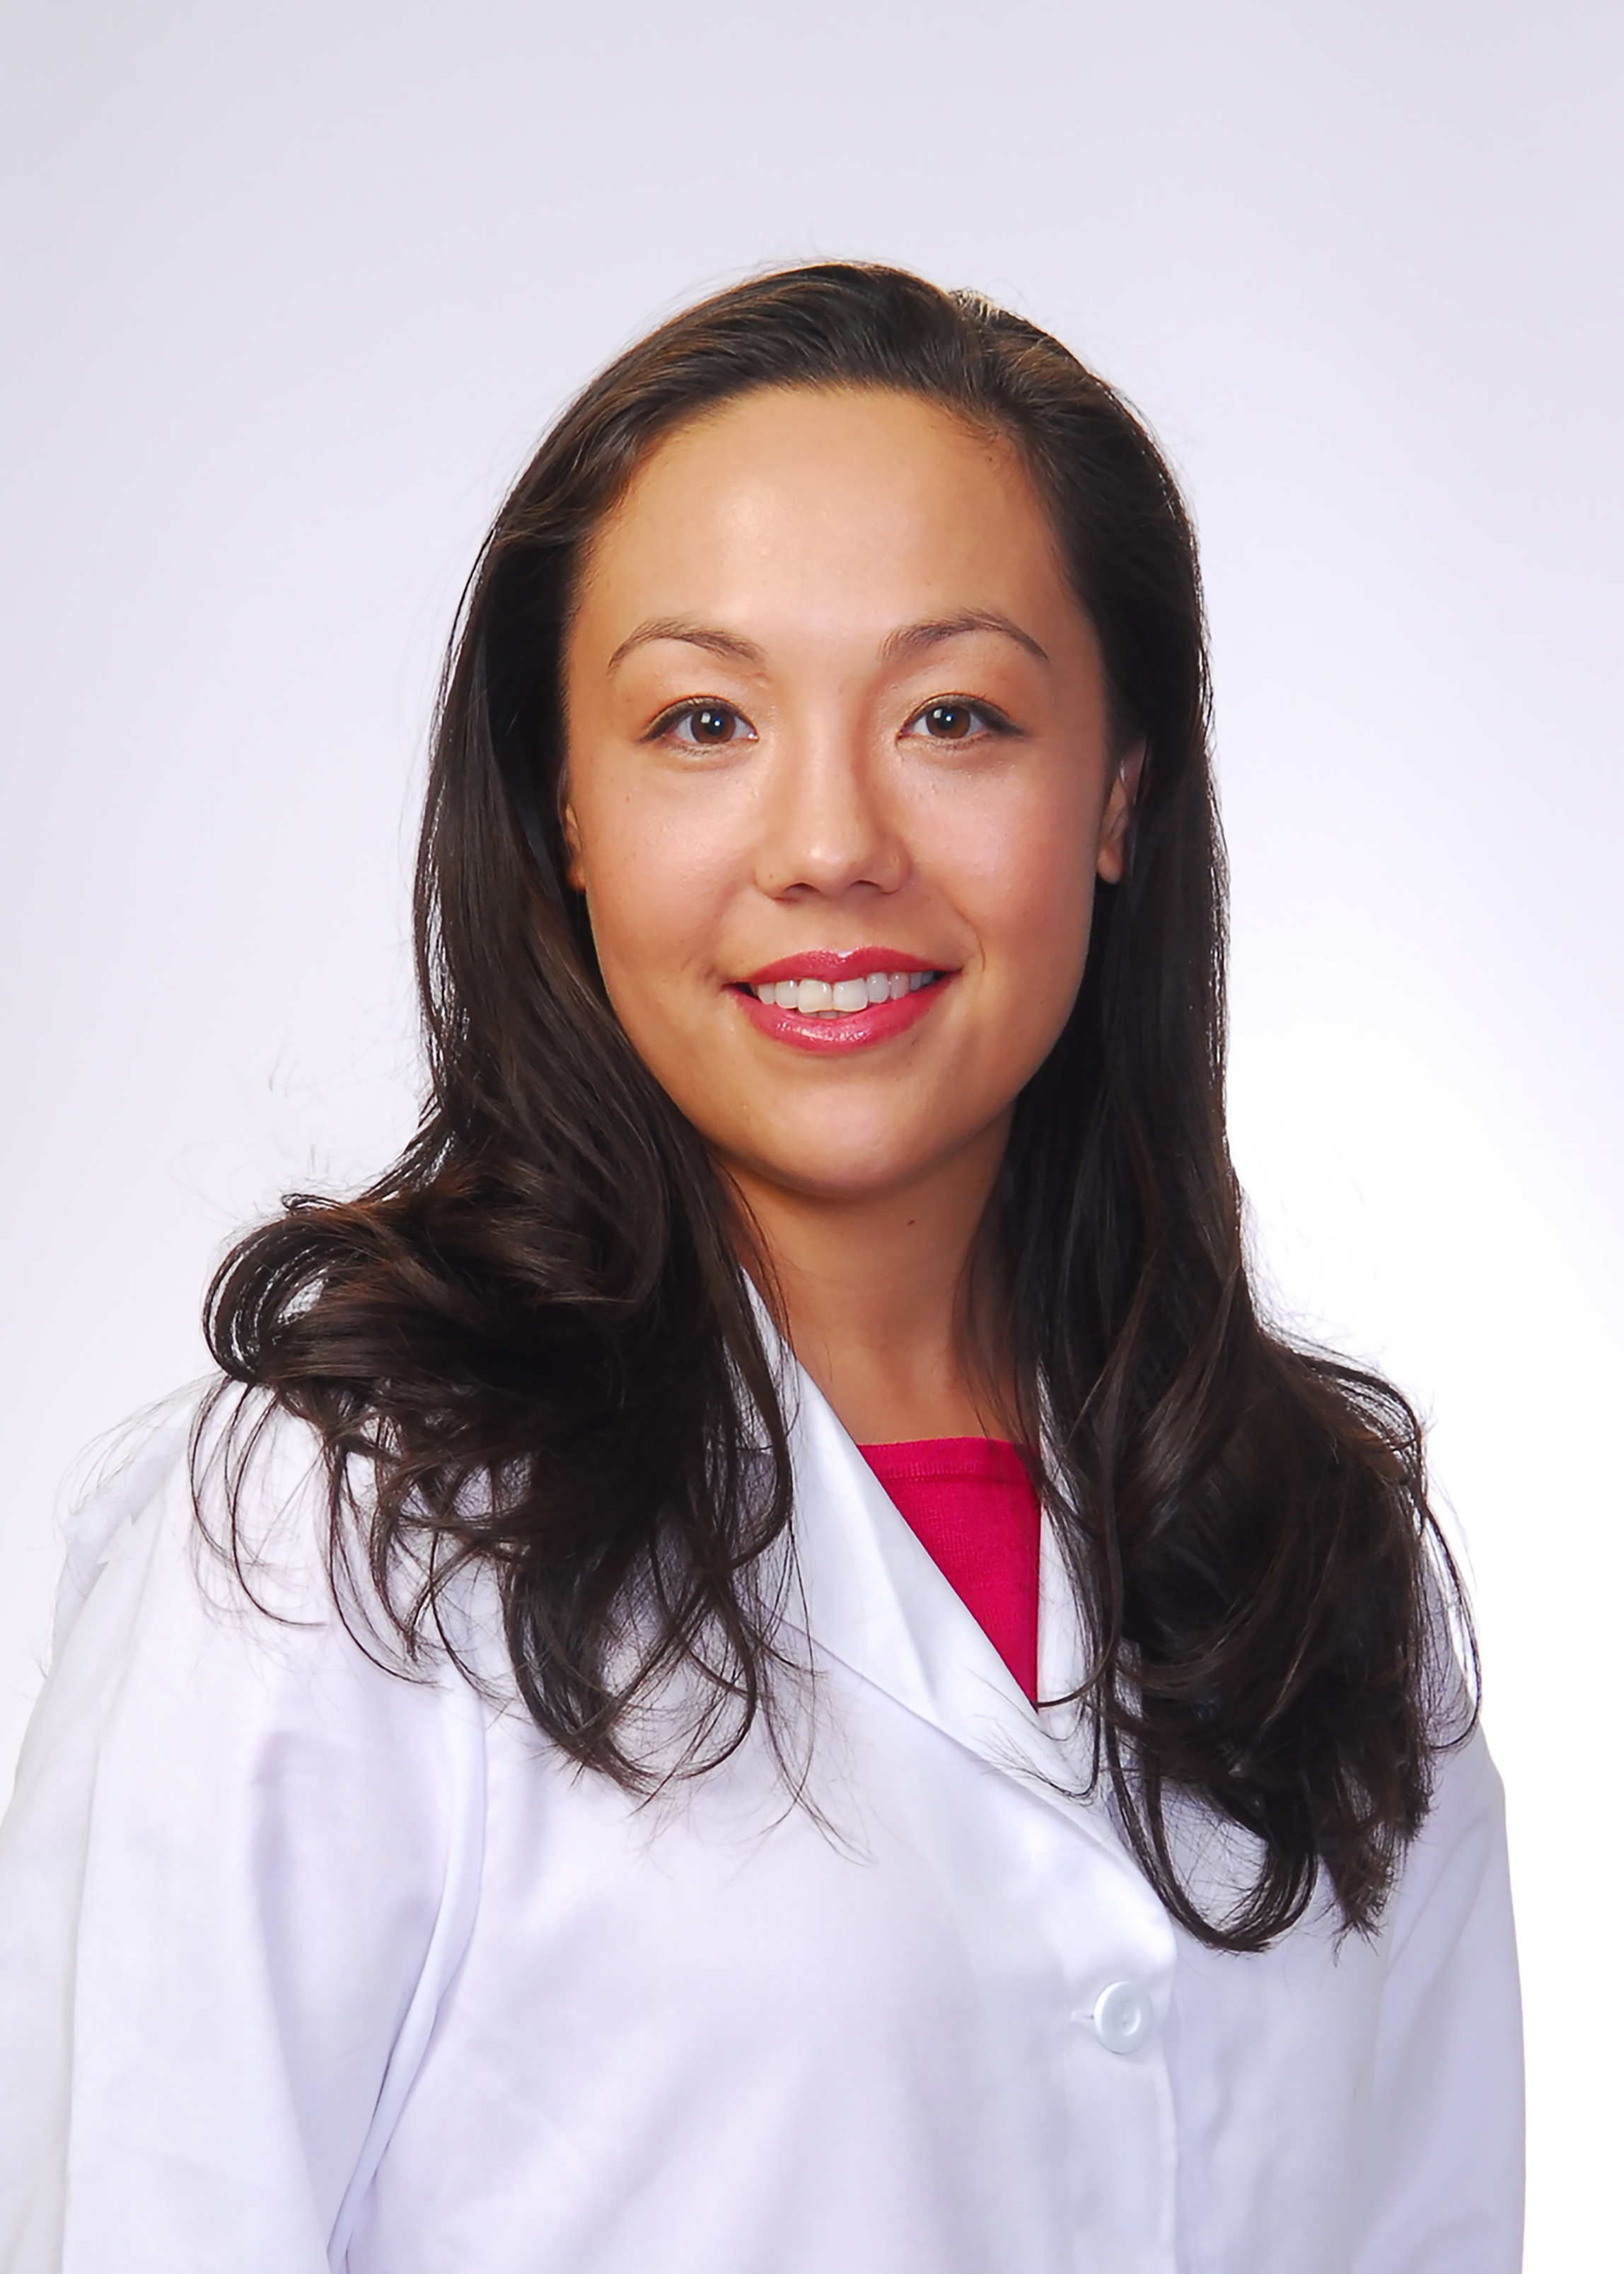 Amy Loyd D O 187 Department Of Dermatology 187 College Of